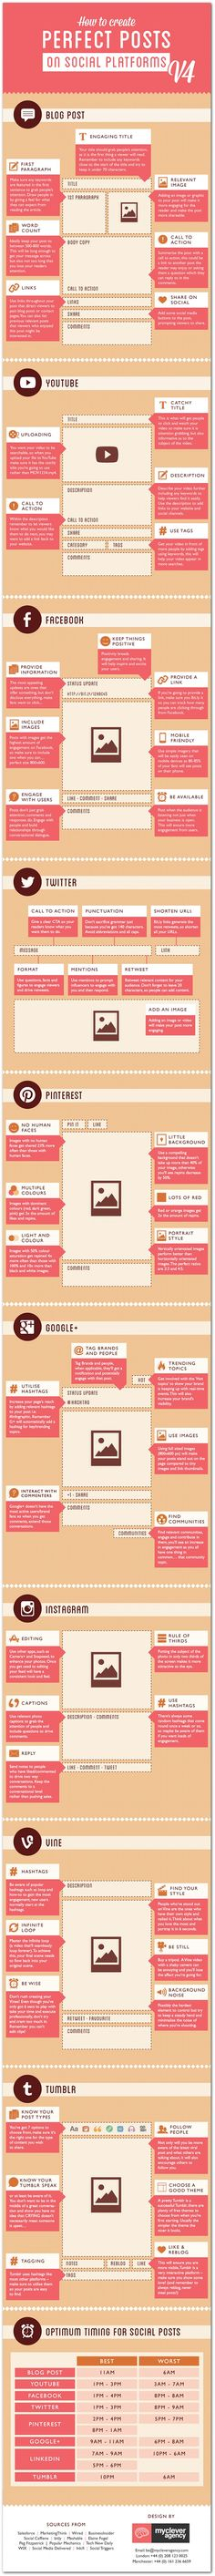 "Have you seen this #infographic? It's good: ""A guide to perfect social media posts"" #Pinterest #blogging"